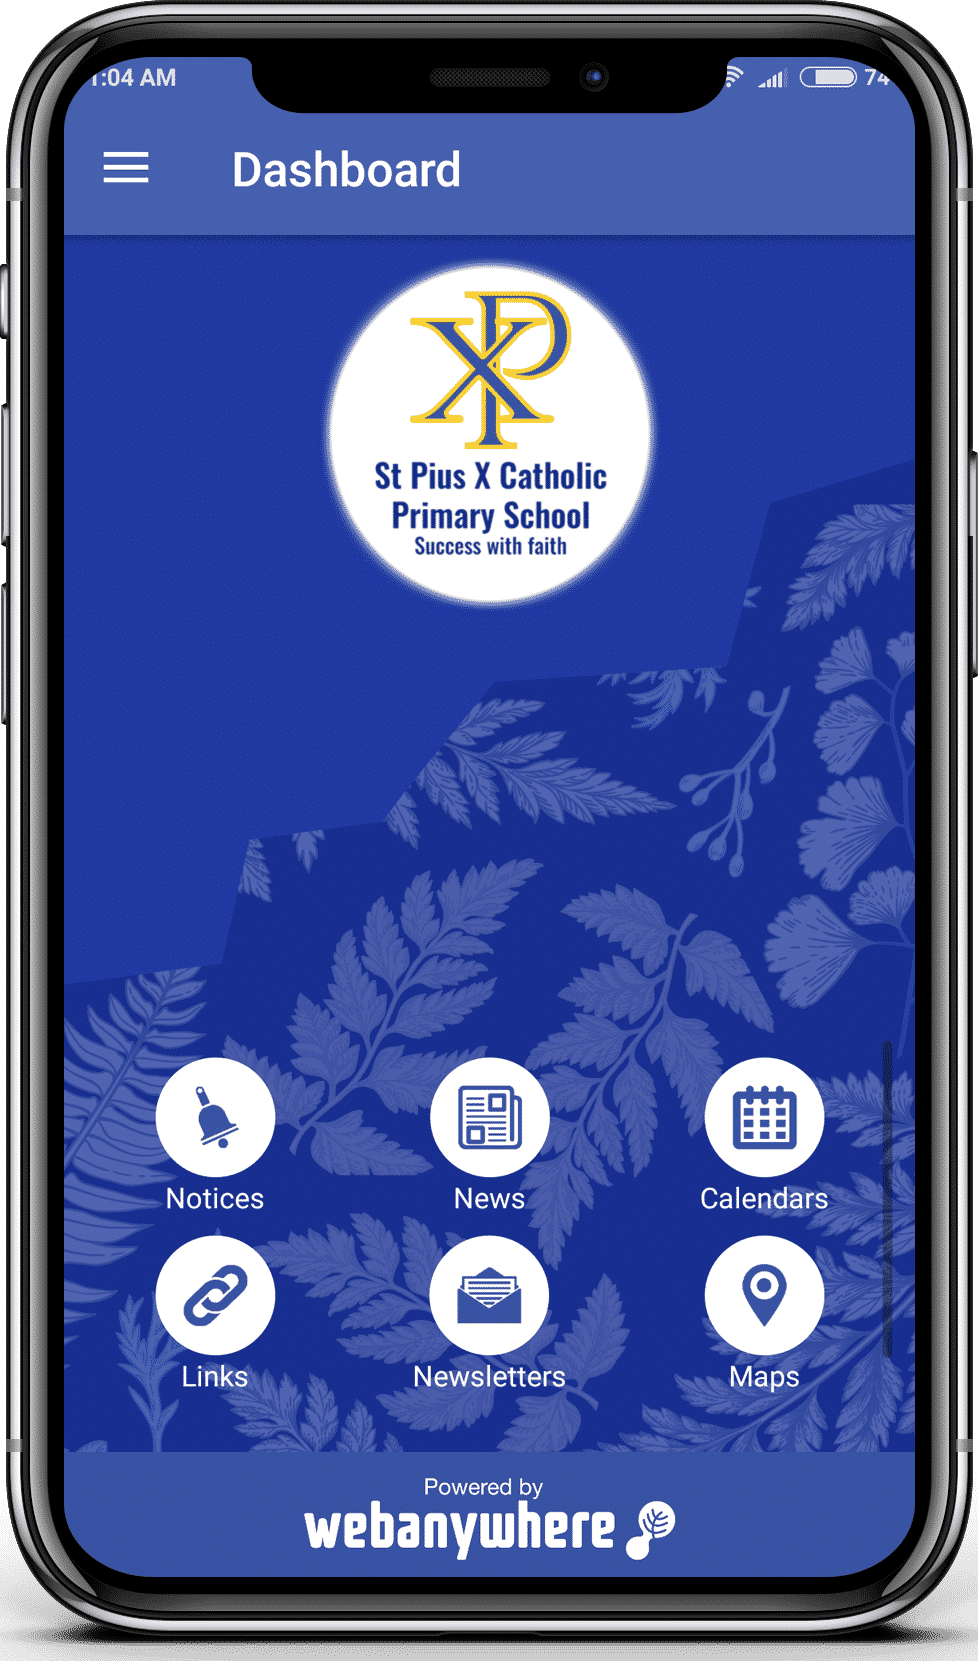 St Pius school mobile app